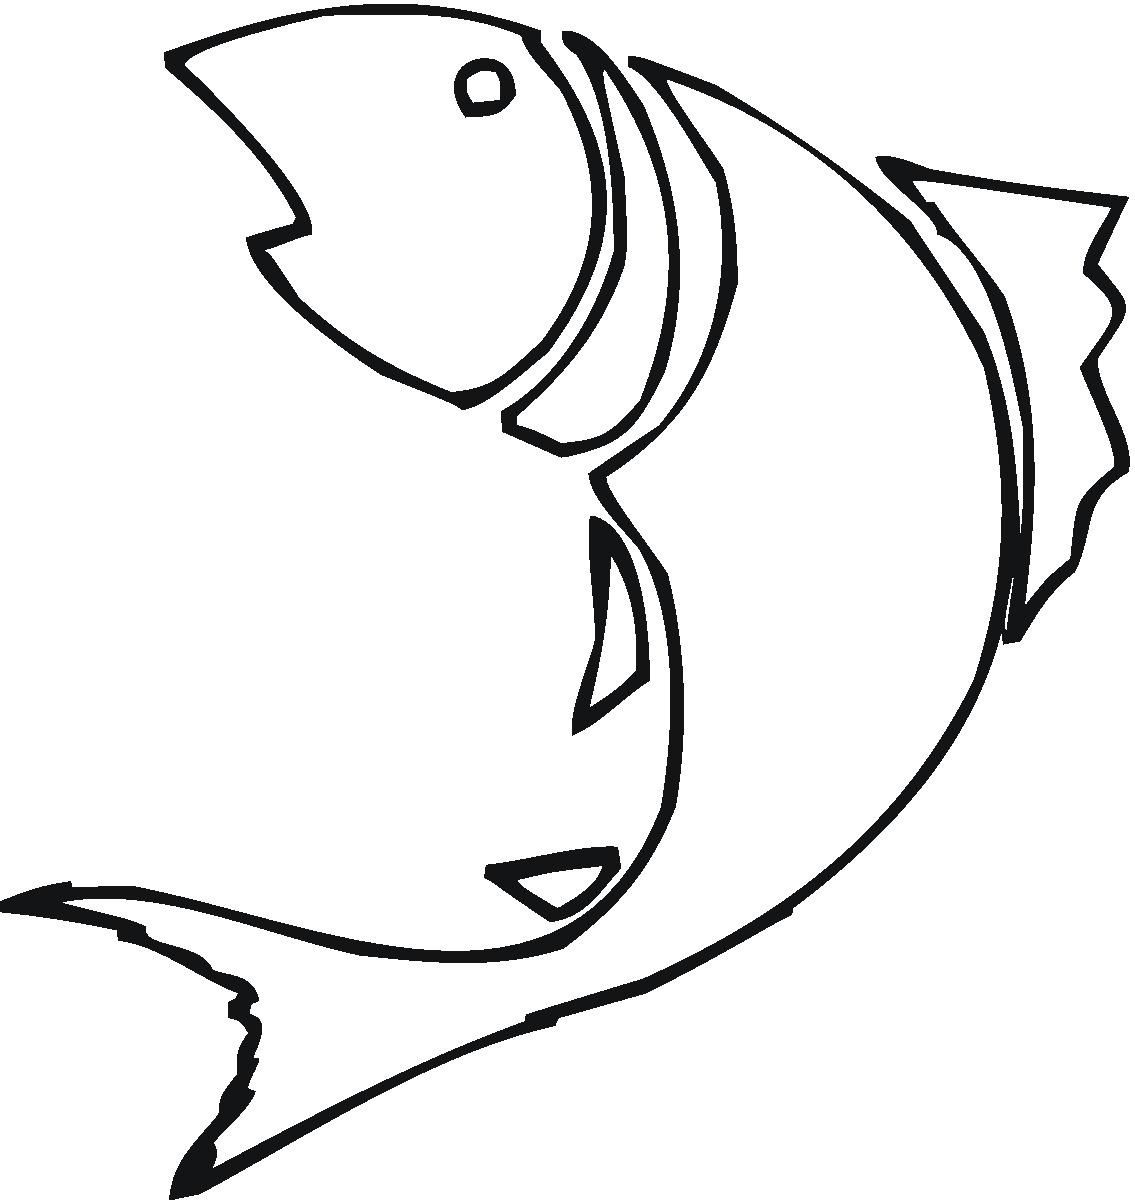 Fish clip art easy. Value sketches weird drawing